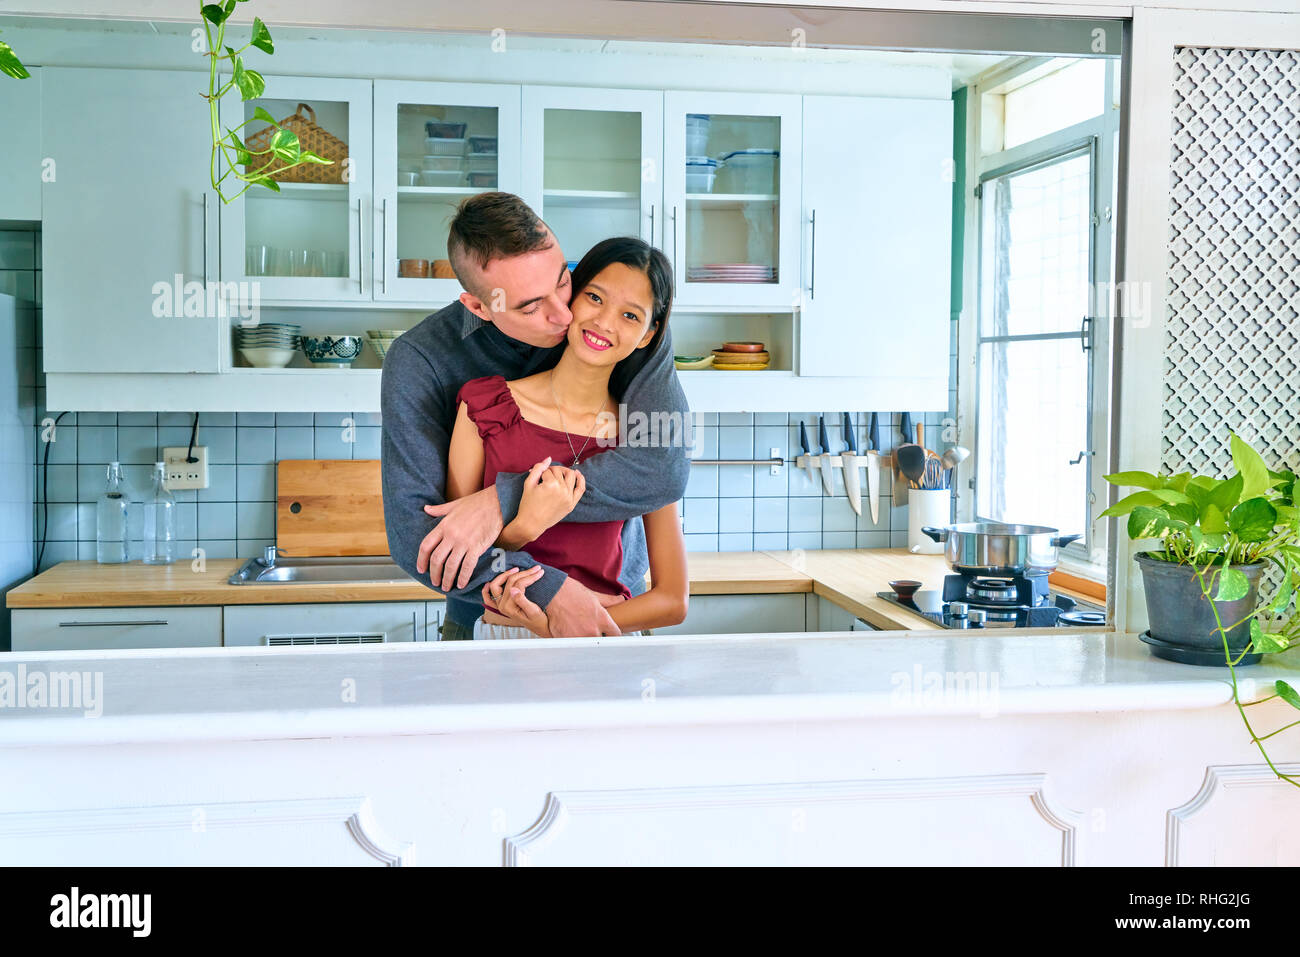 Lovely couple posing - embracing and kissing on cheek - Stock Image